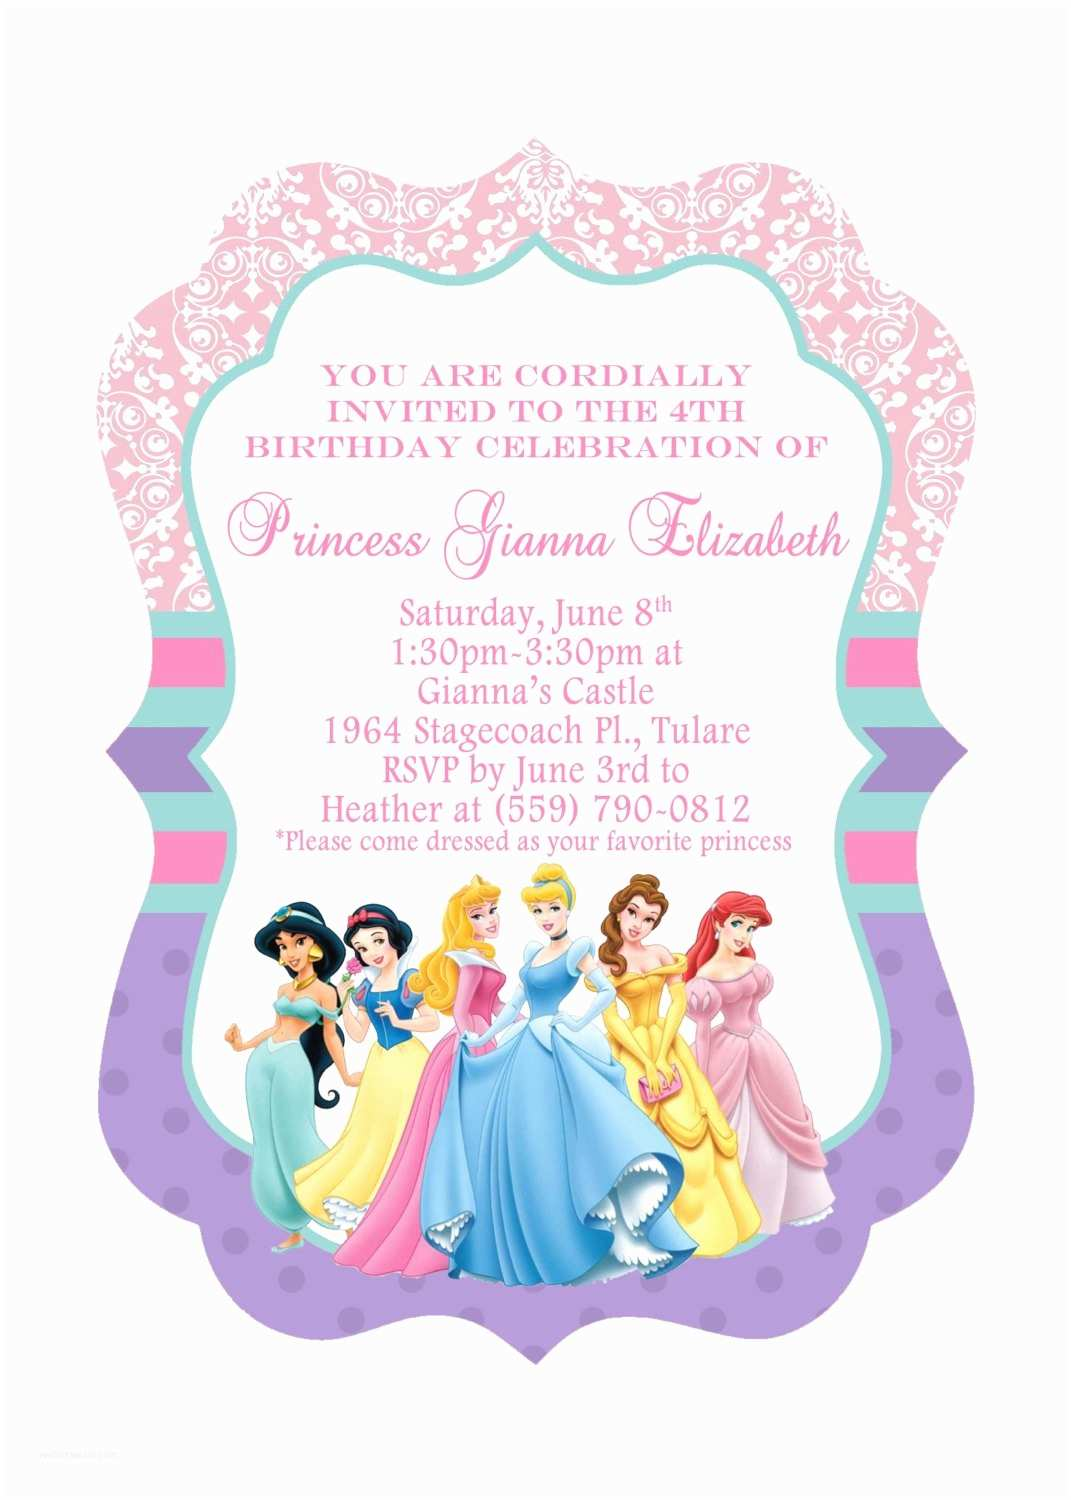 Disney Princess Birthday Invitations Disney Princesses Birthday Invitations Disney Princess